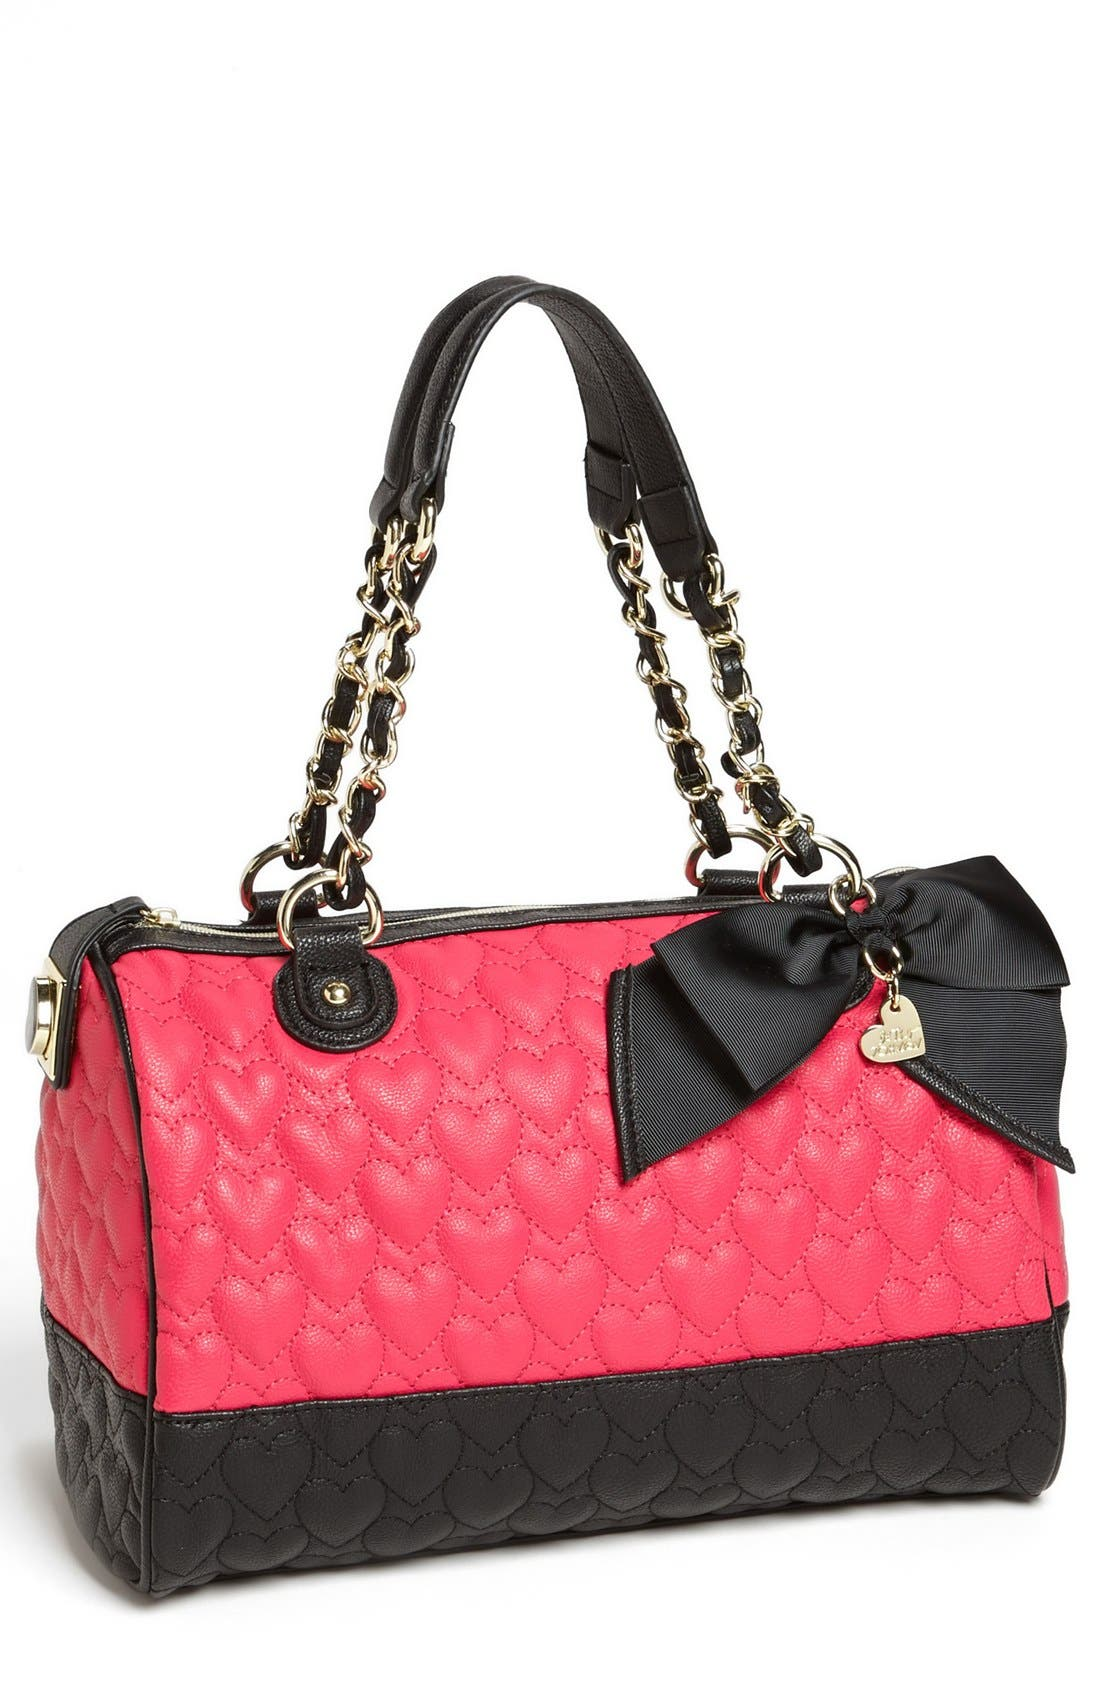 Main Image - Betsey Johnson 'Will You Be Mine' Satchel